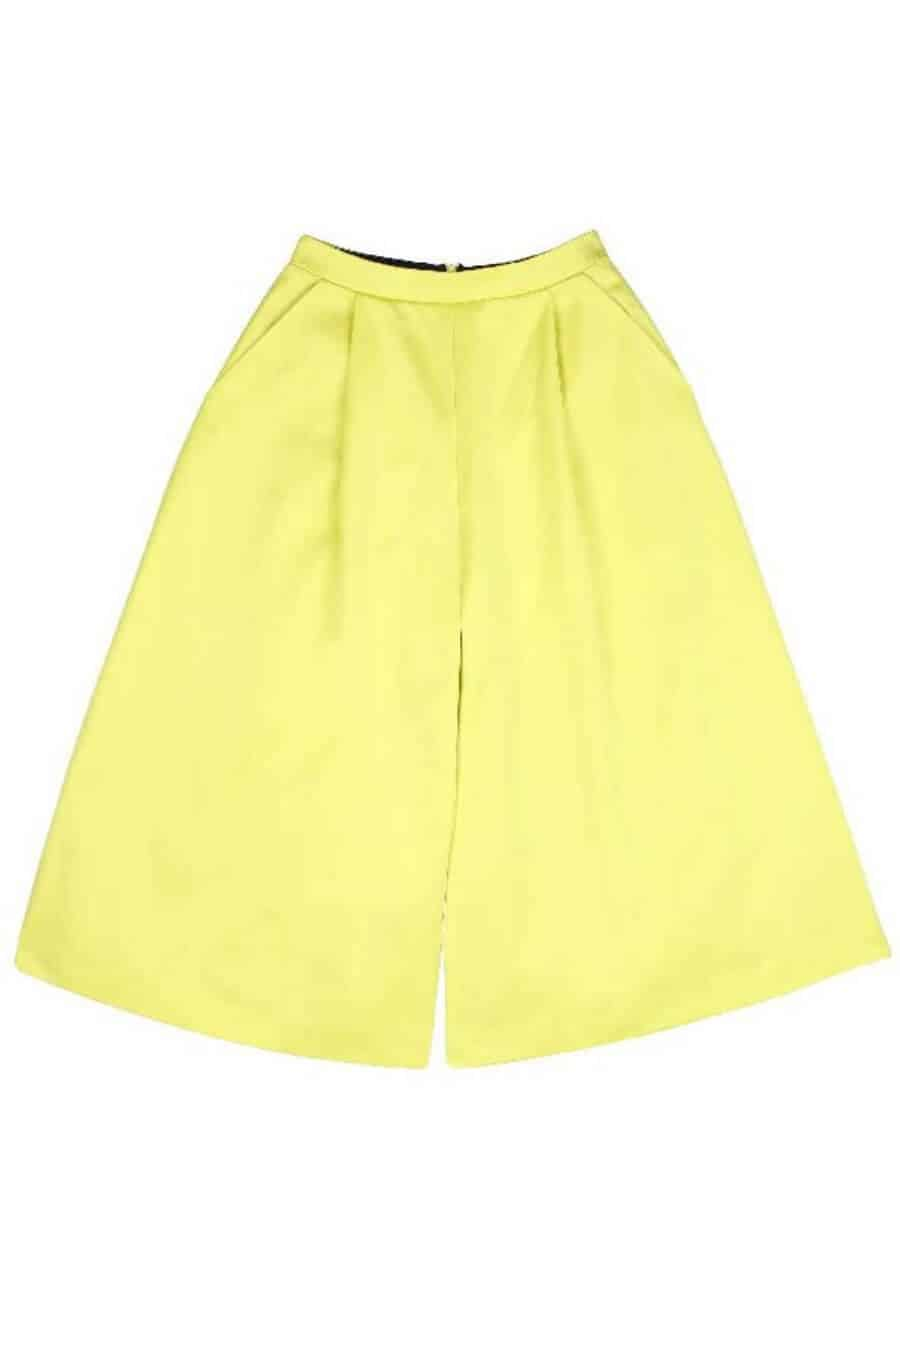 Style Theory_n12h-martial-culottes-yellow-1